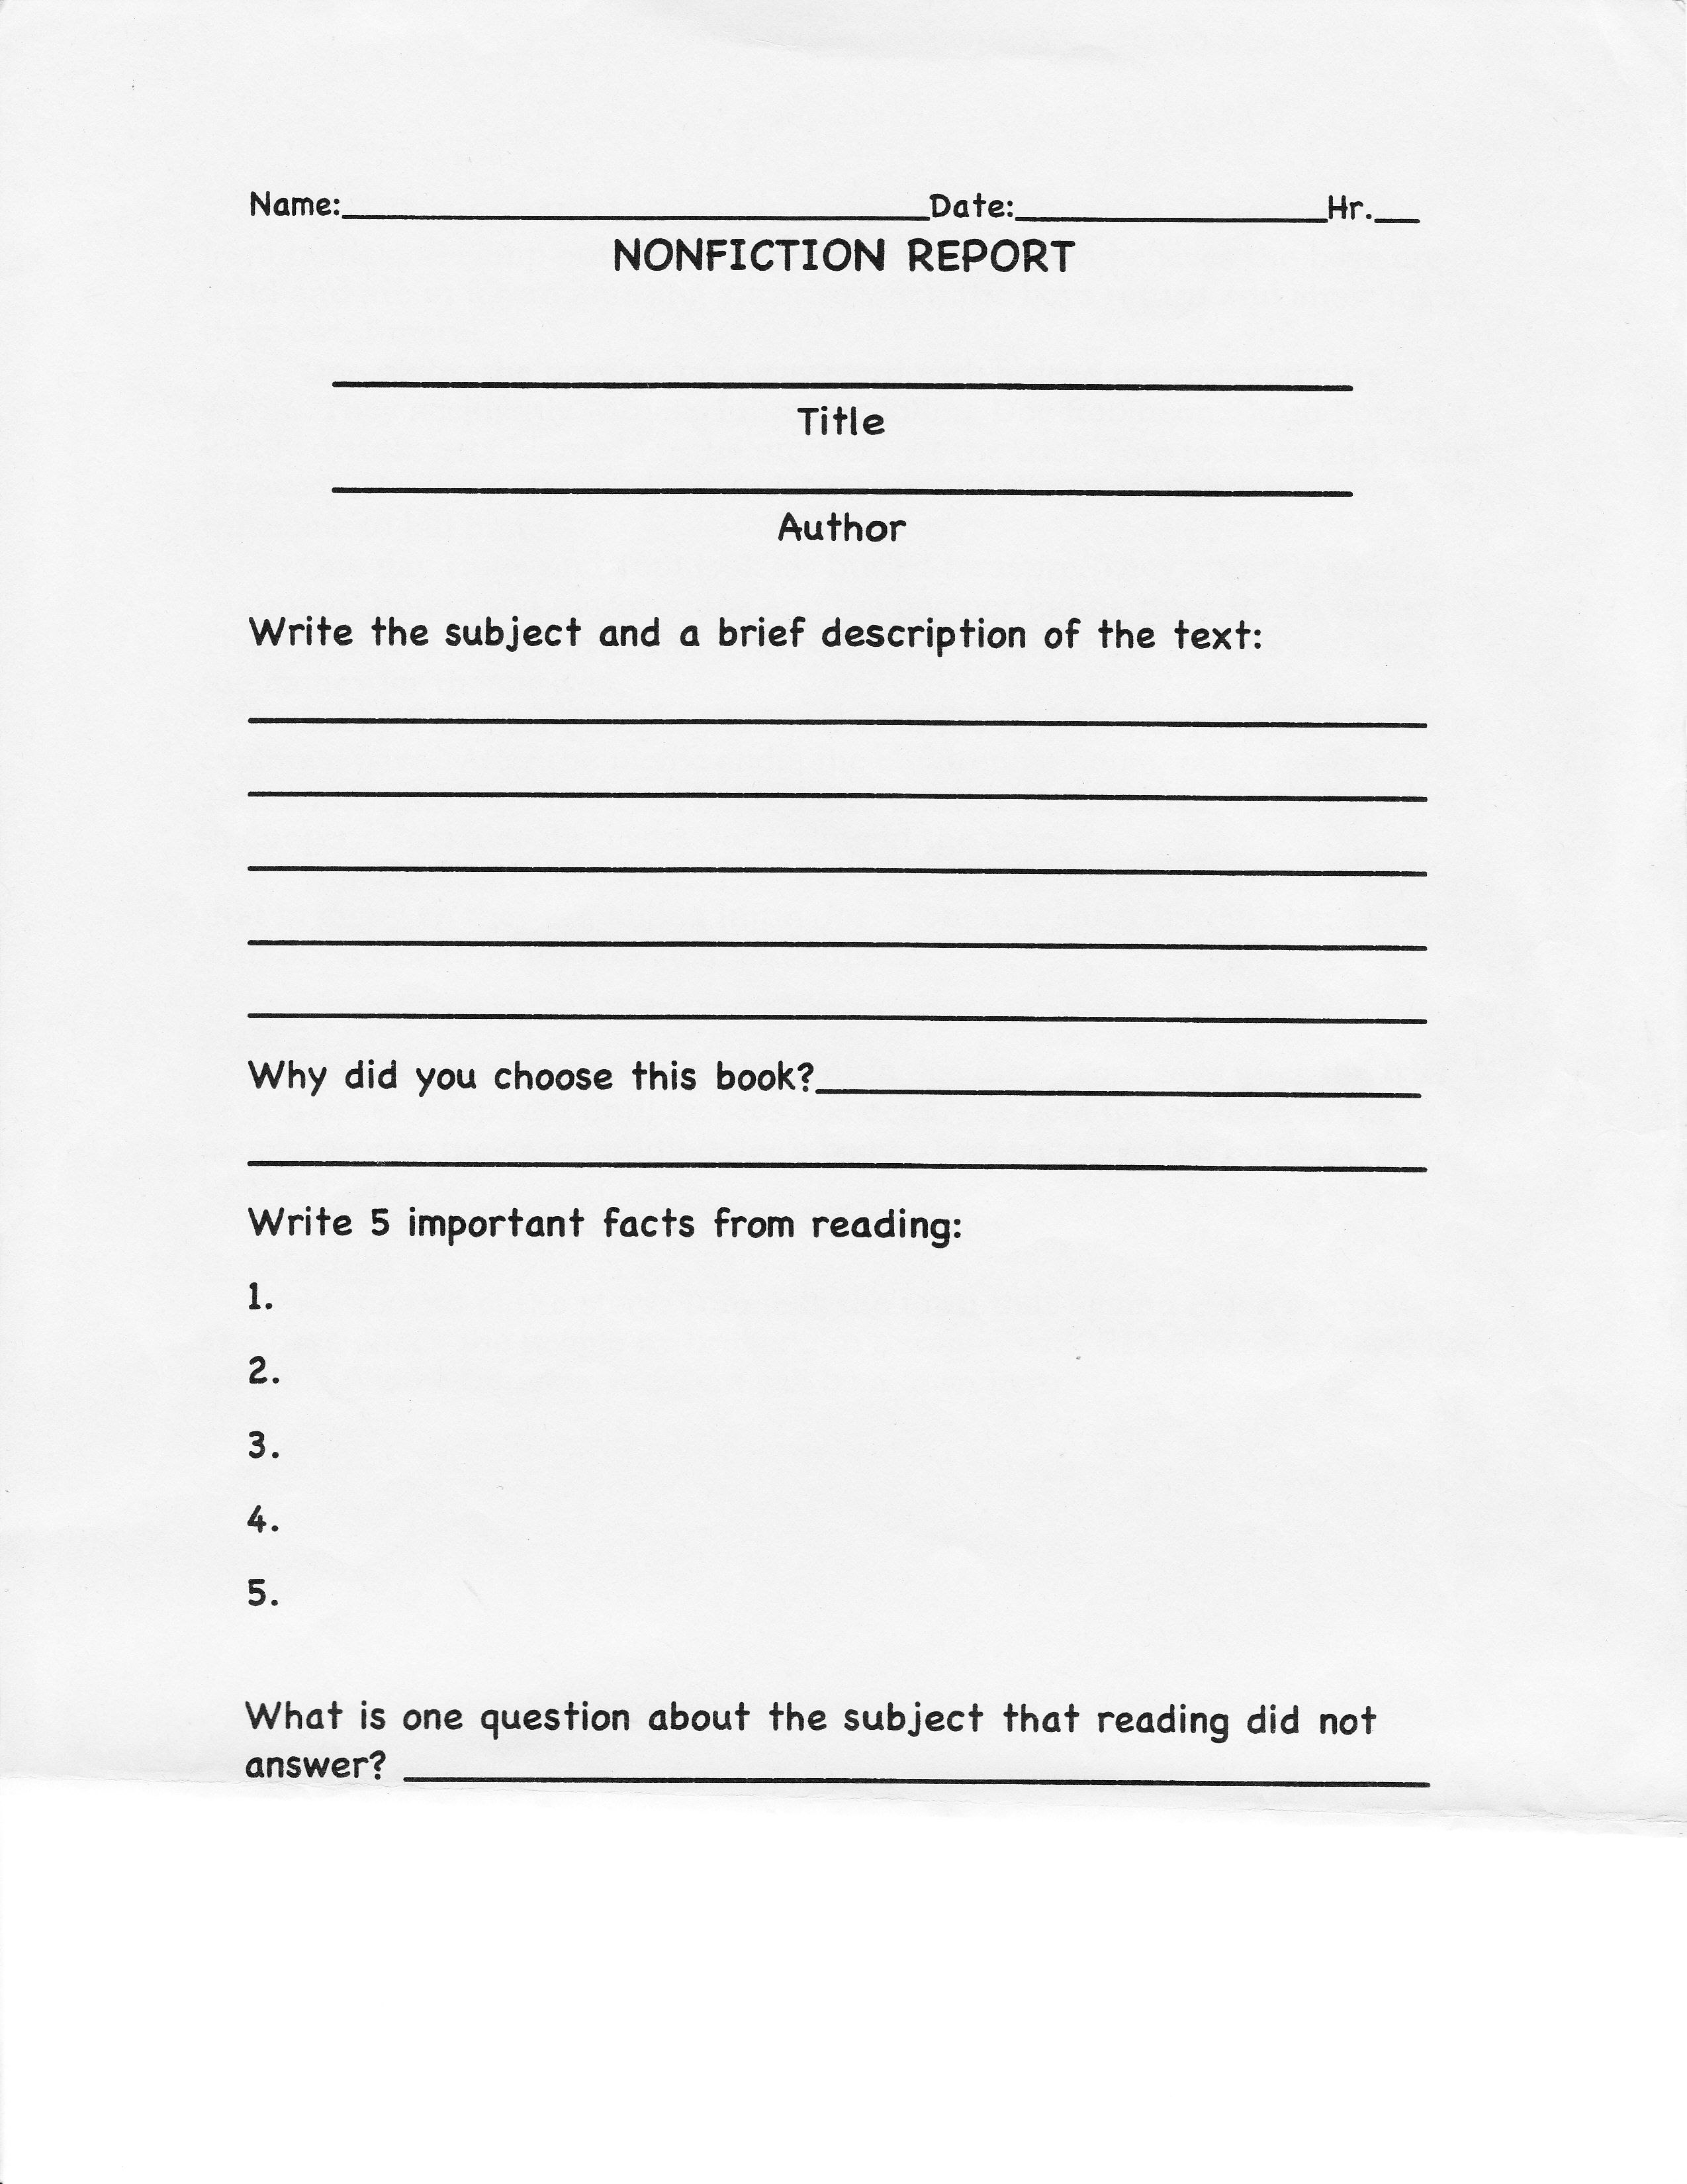 Image Result For Nonfiction Book Report Template College Level Regarding College Book Report Template